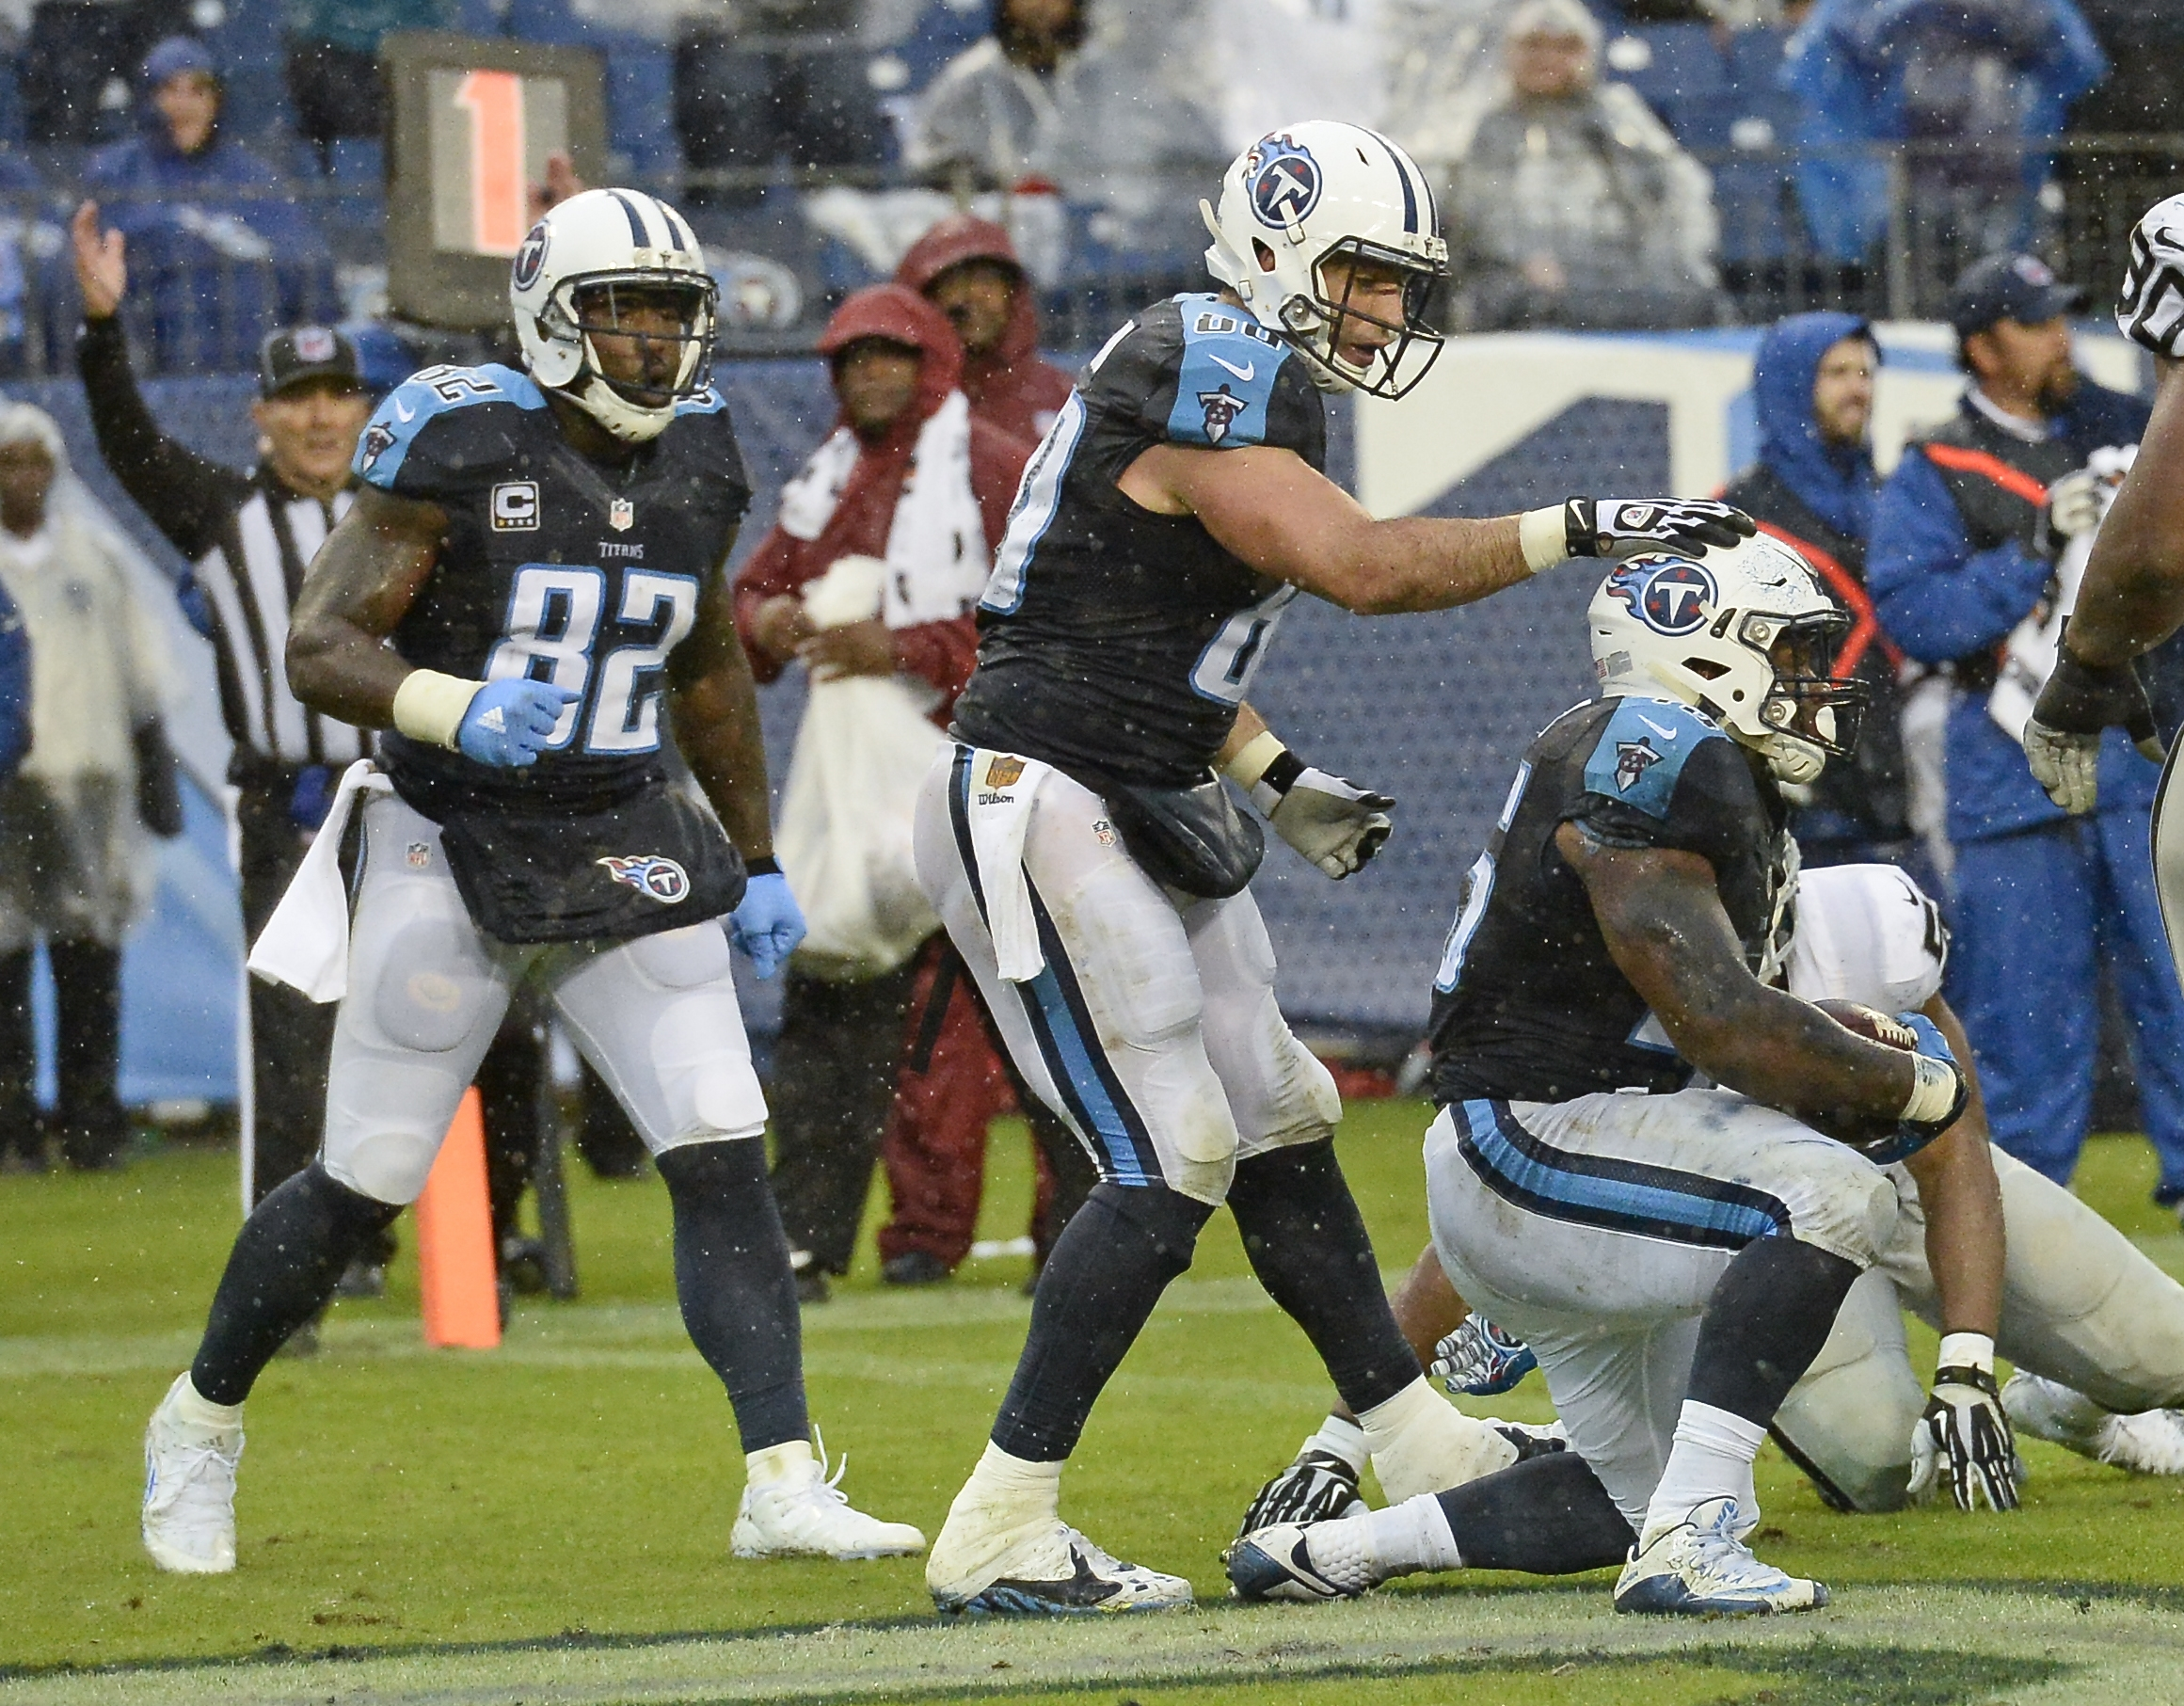 Tennessee Titans fullback Jalston Fowler, right, is congratulated by tight end Anthony Fasano after Fowler caught a 1-yard touchdown pass against the Oakland Raiders in the second half of an NFL football game Sunday, Nov. 29, 2015, in Nashville, Tenn. At